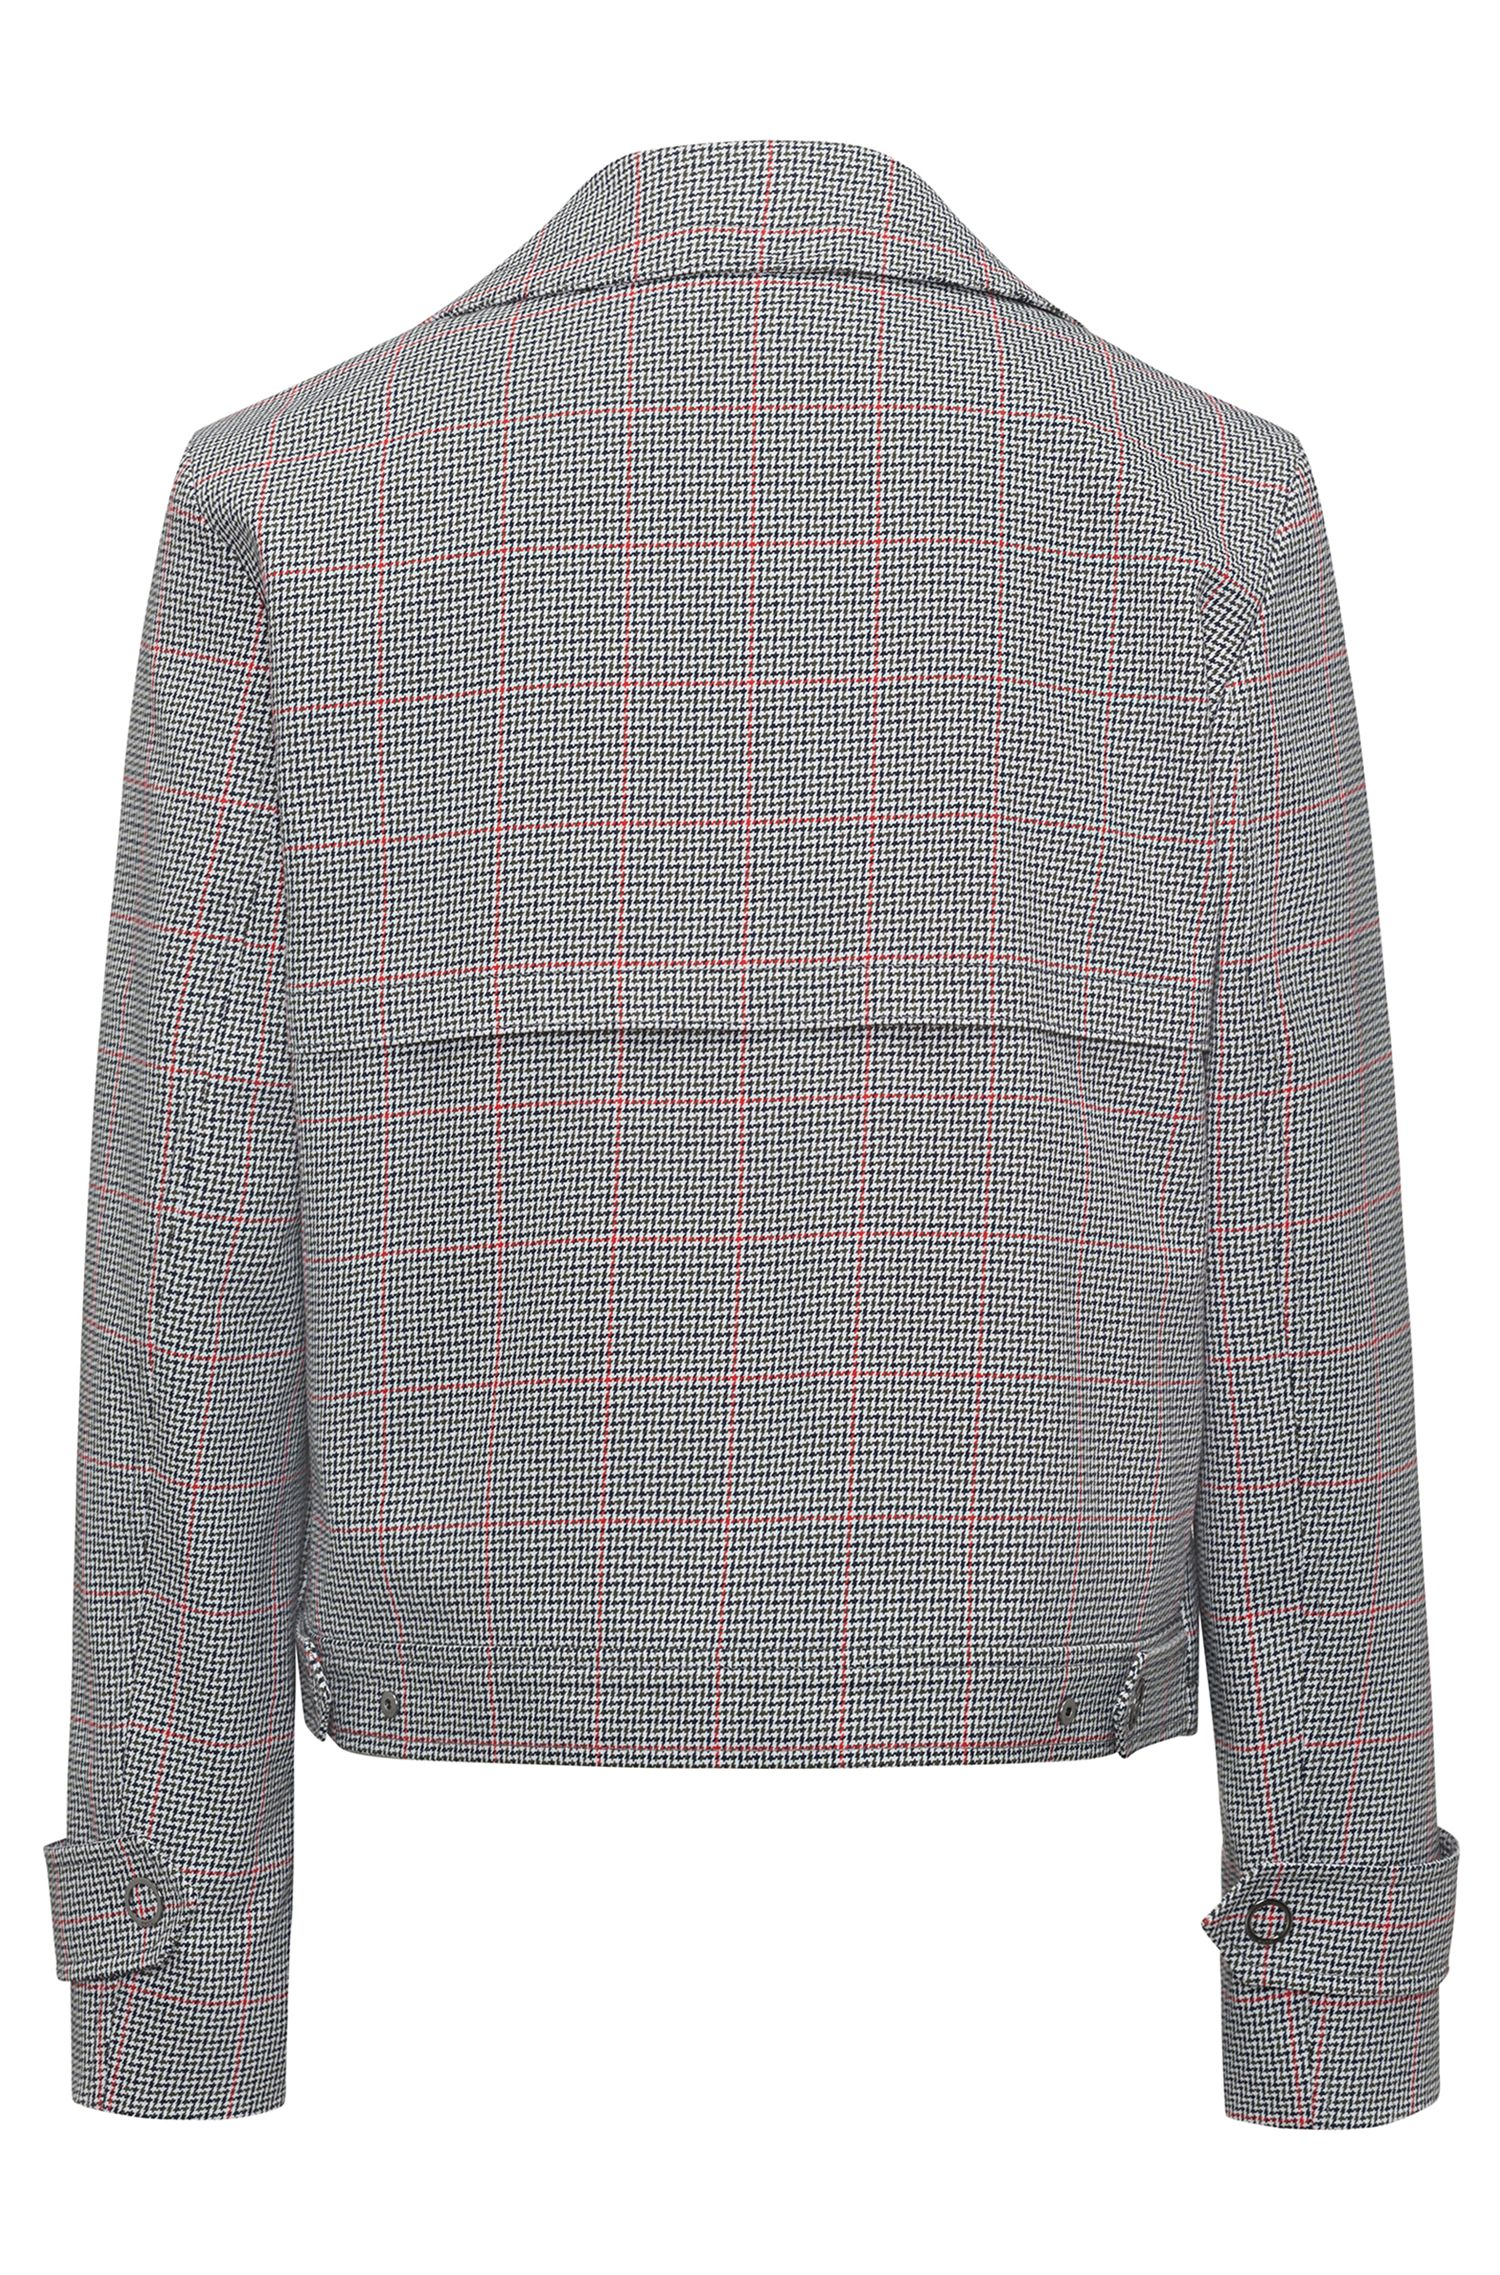 Hugo Boss - Relaxed-fit jacket in zigzag-check cotton - 4